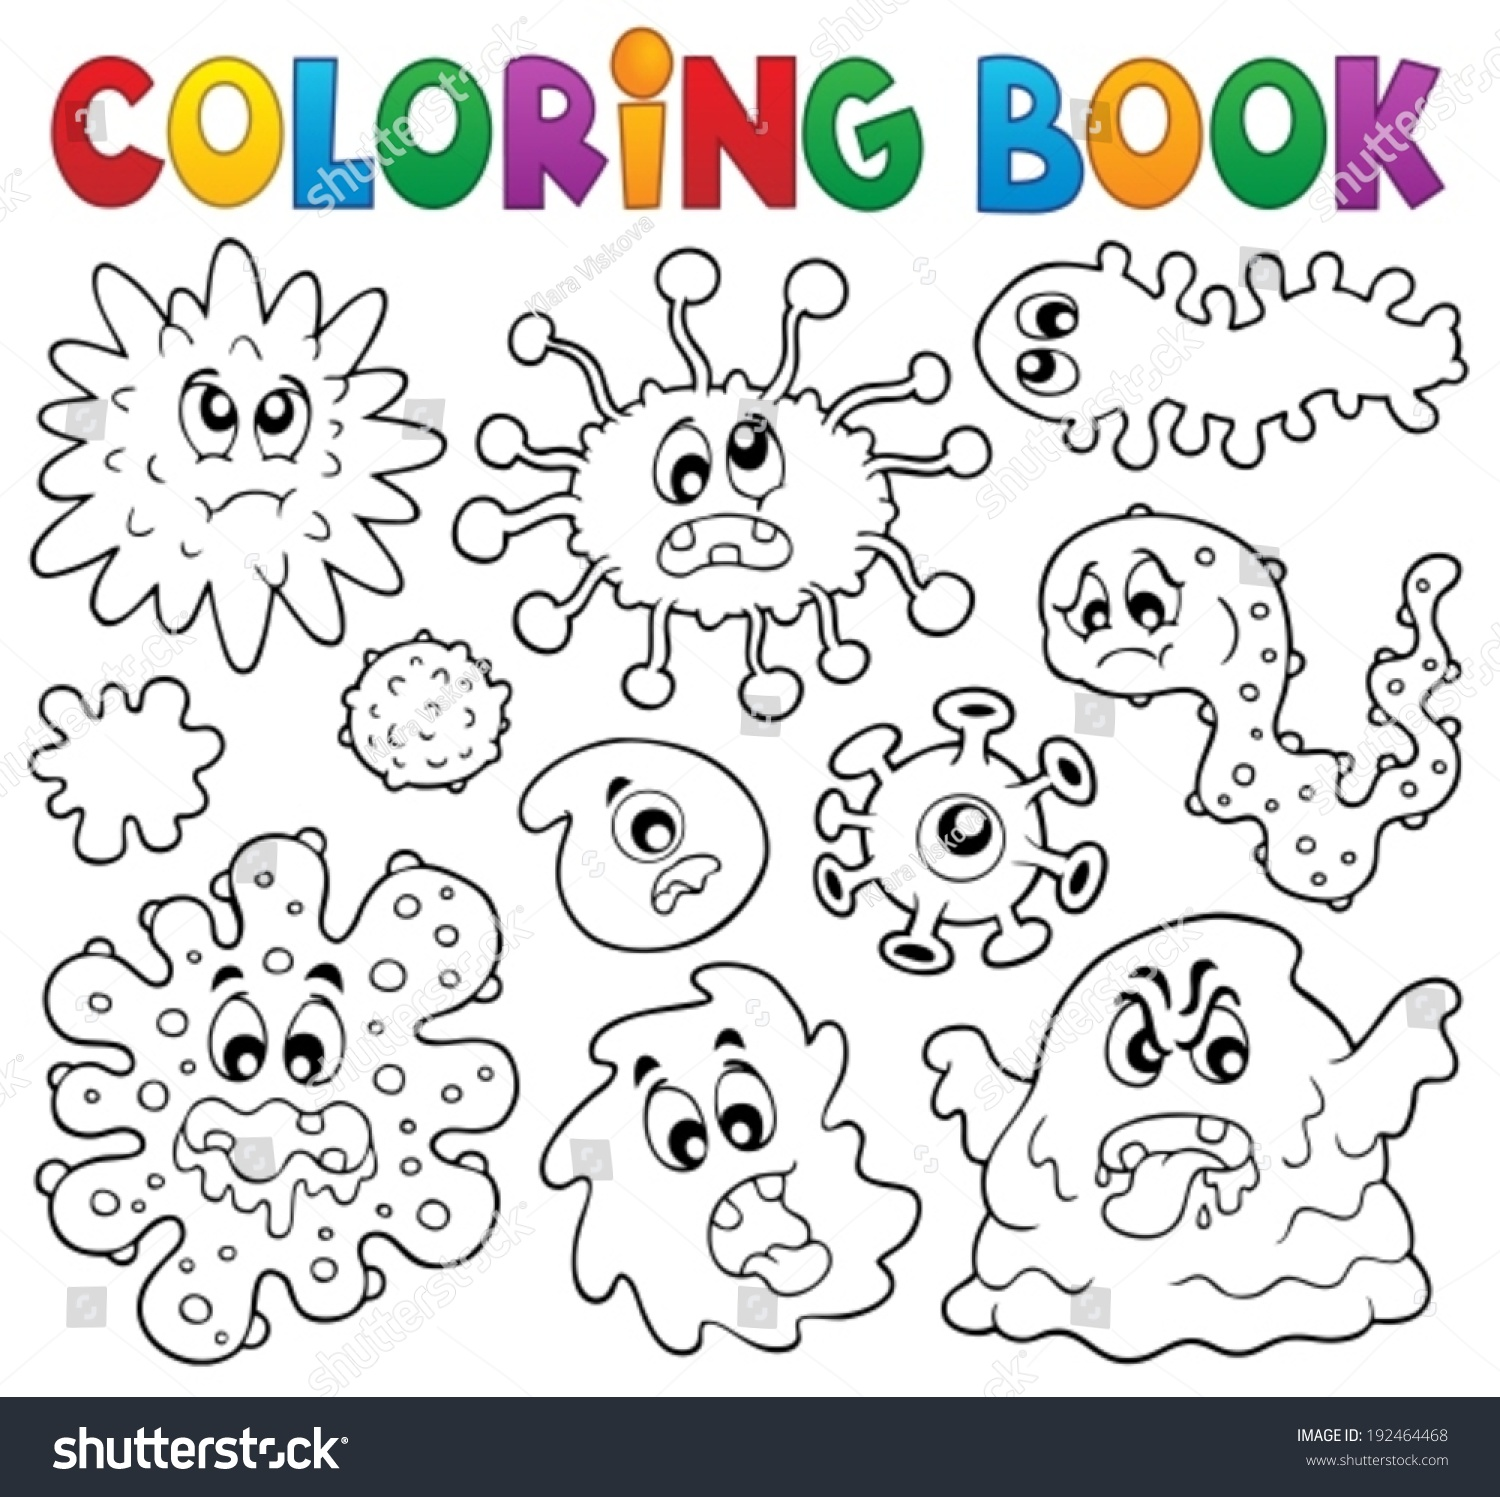 Free coloring pages germs - Coloring Book Germs Theme 1 Eps10 Vector Illustration